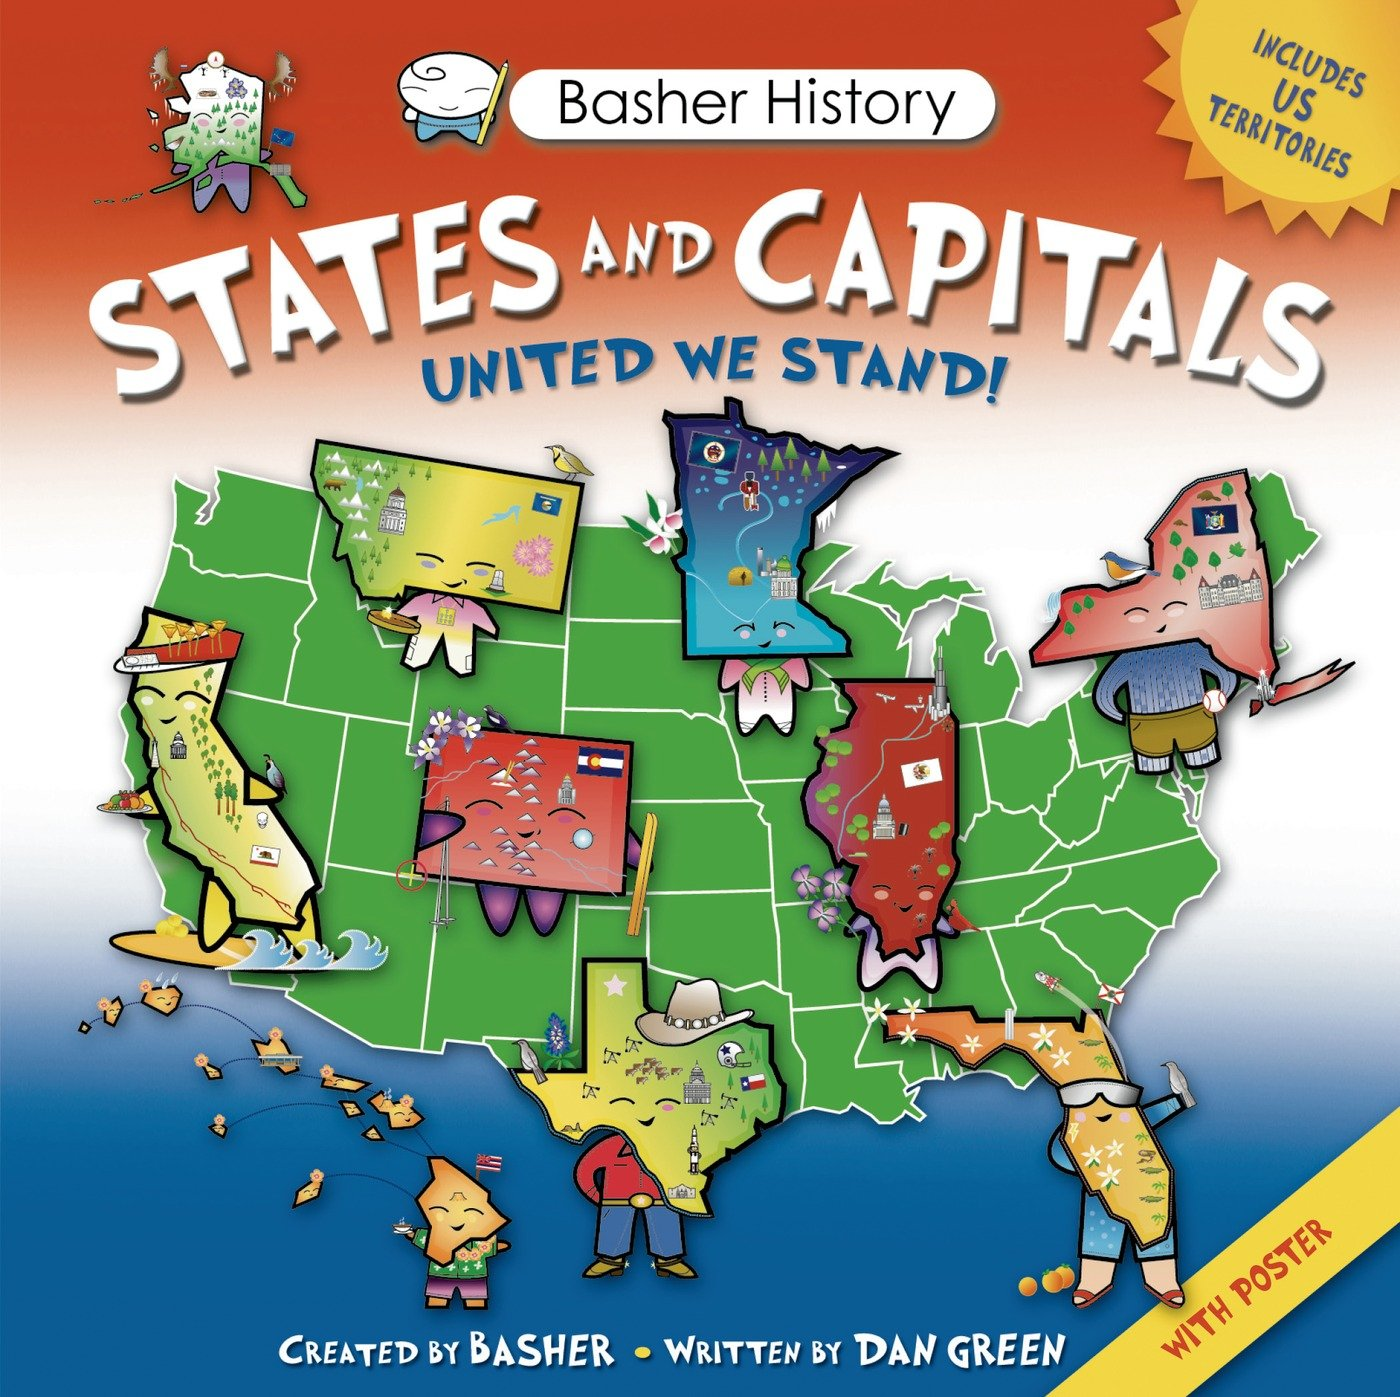 basher history states and capitals united we stand simon basher dan green edward widmer 9780753471395 amazon com books